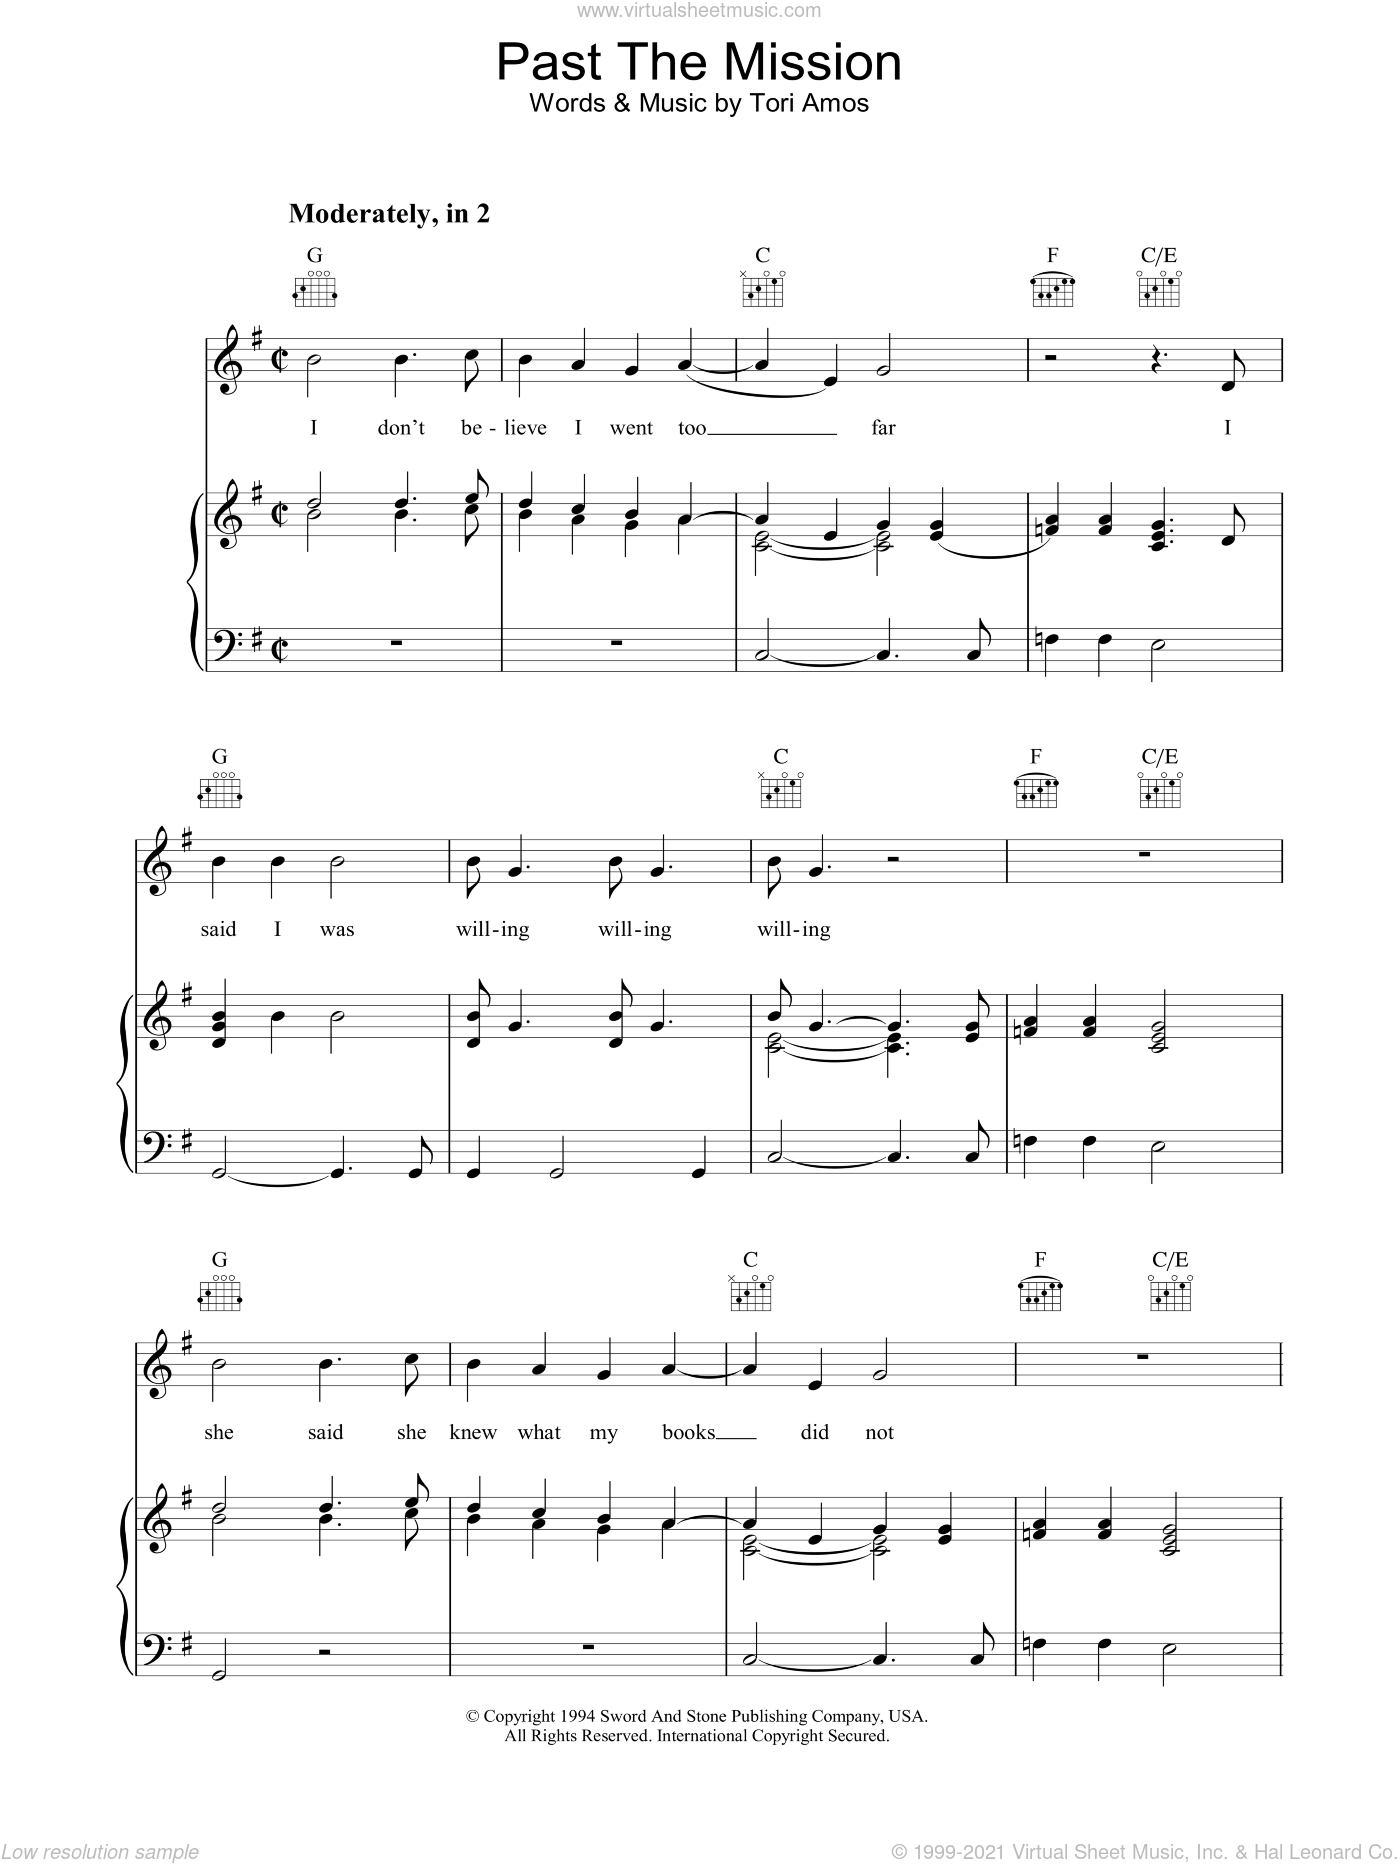 Past The Mission sheet music for voice, piano or guitar by Tori Amos. Score Image Preview.